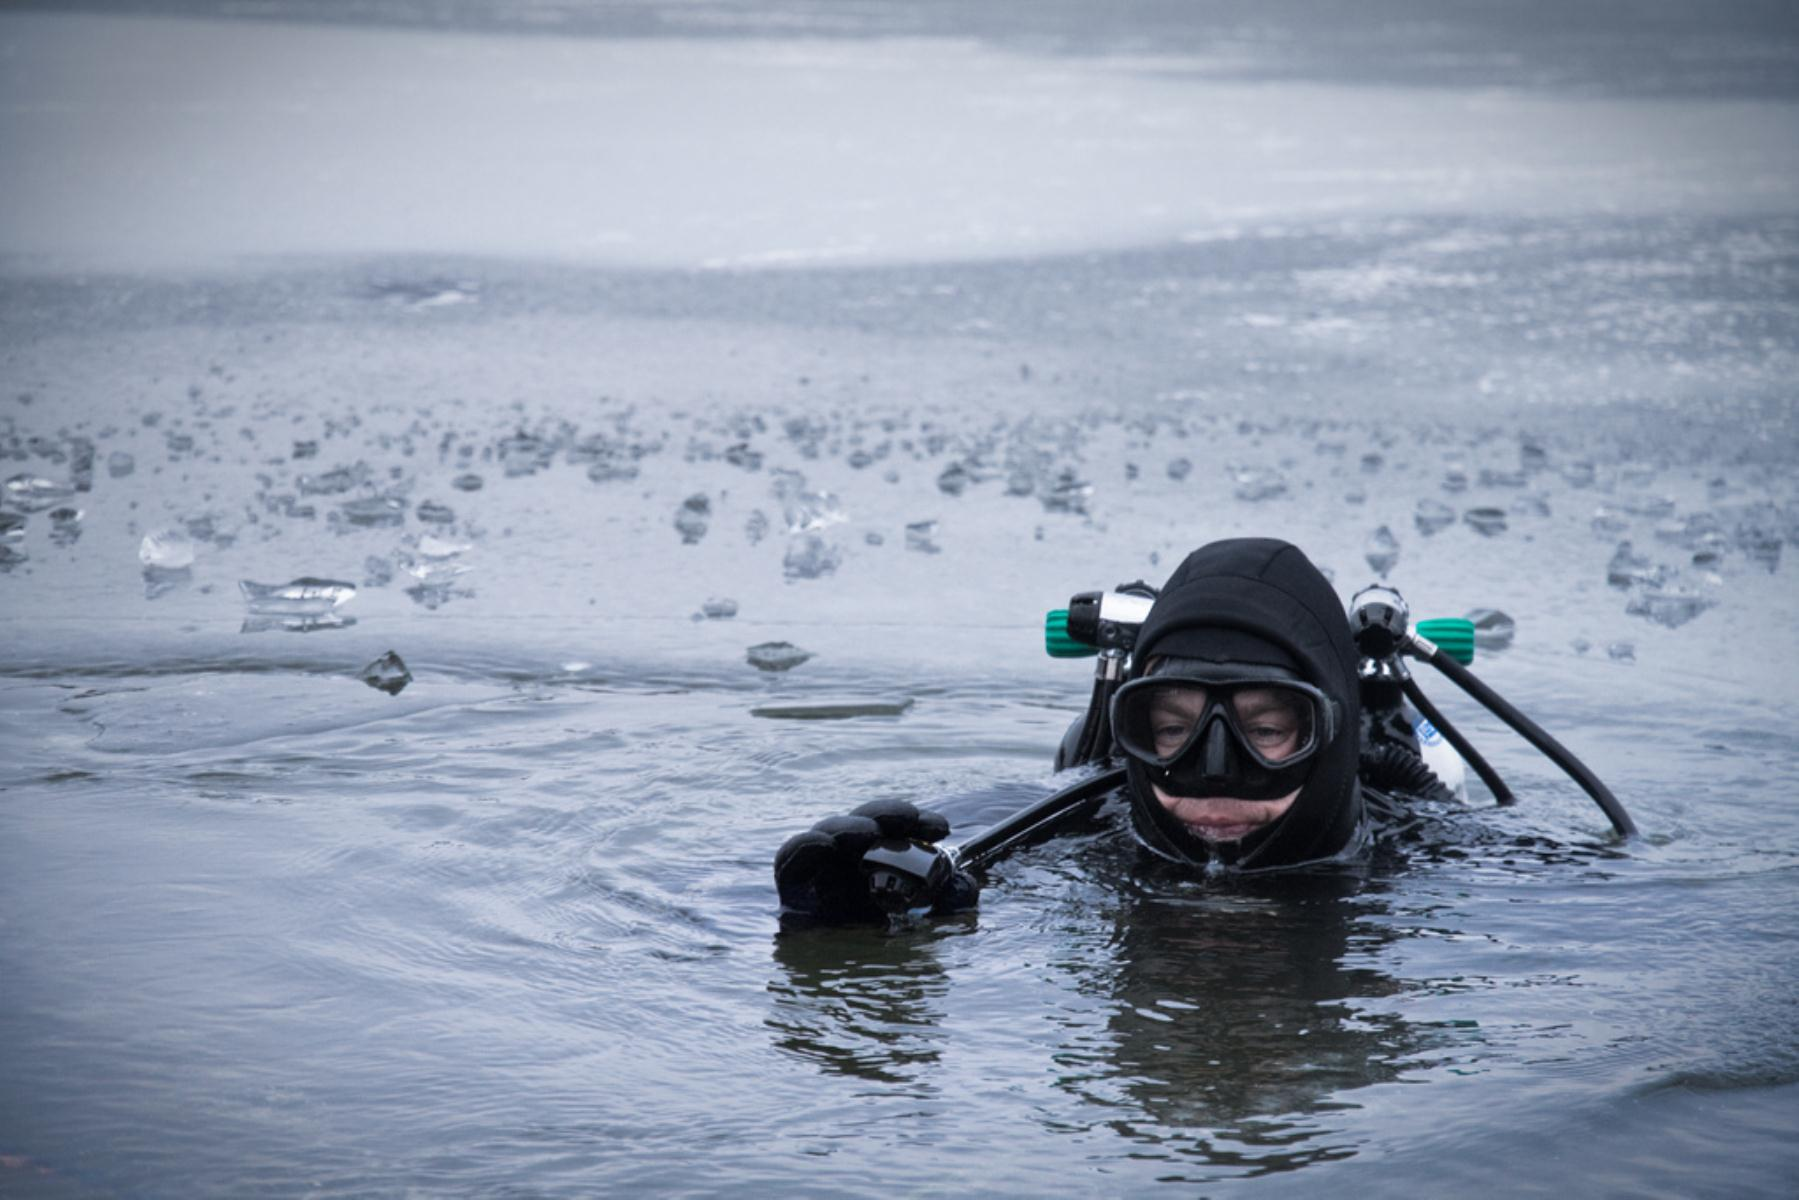 Diver preparing to drop beneath the surface in an icy lake